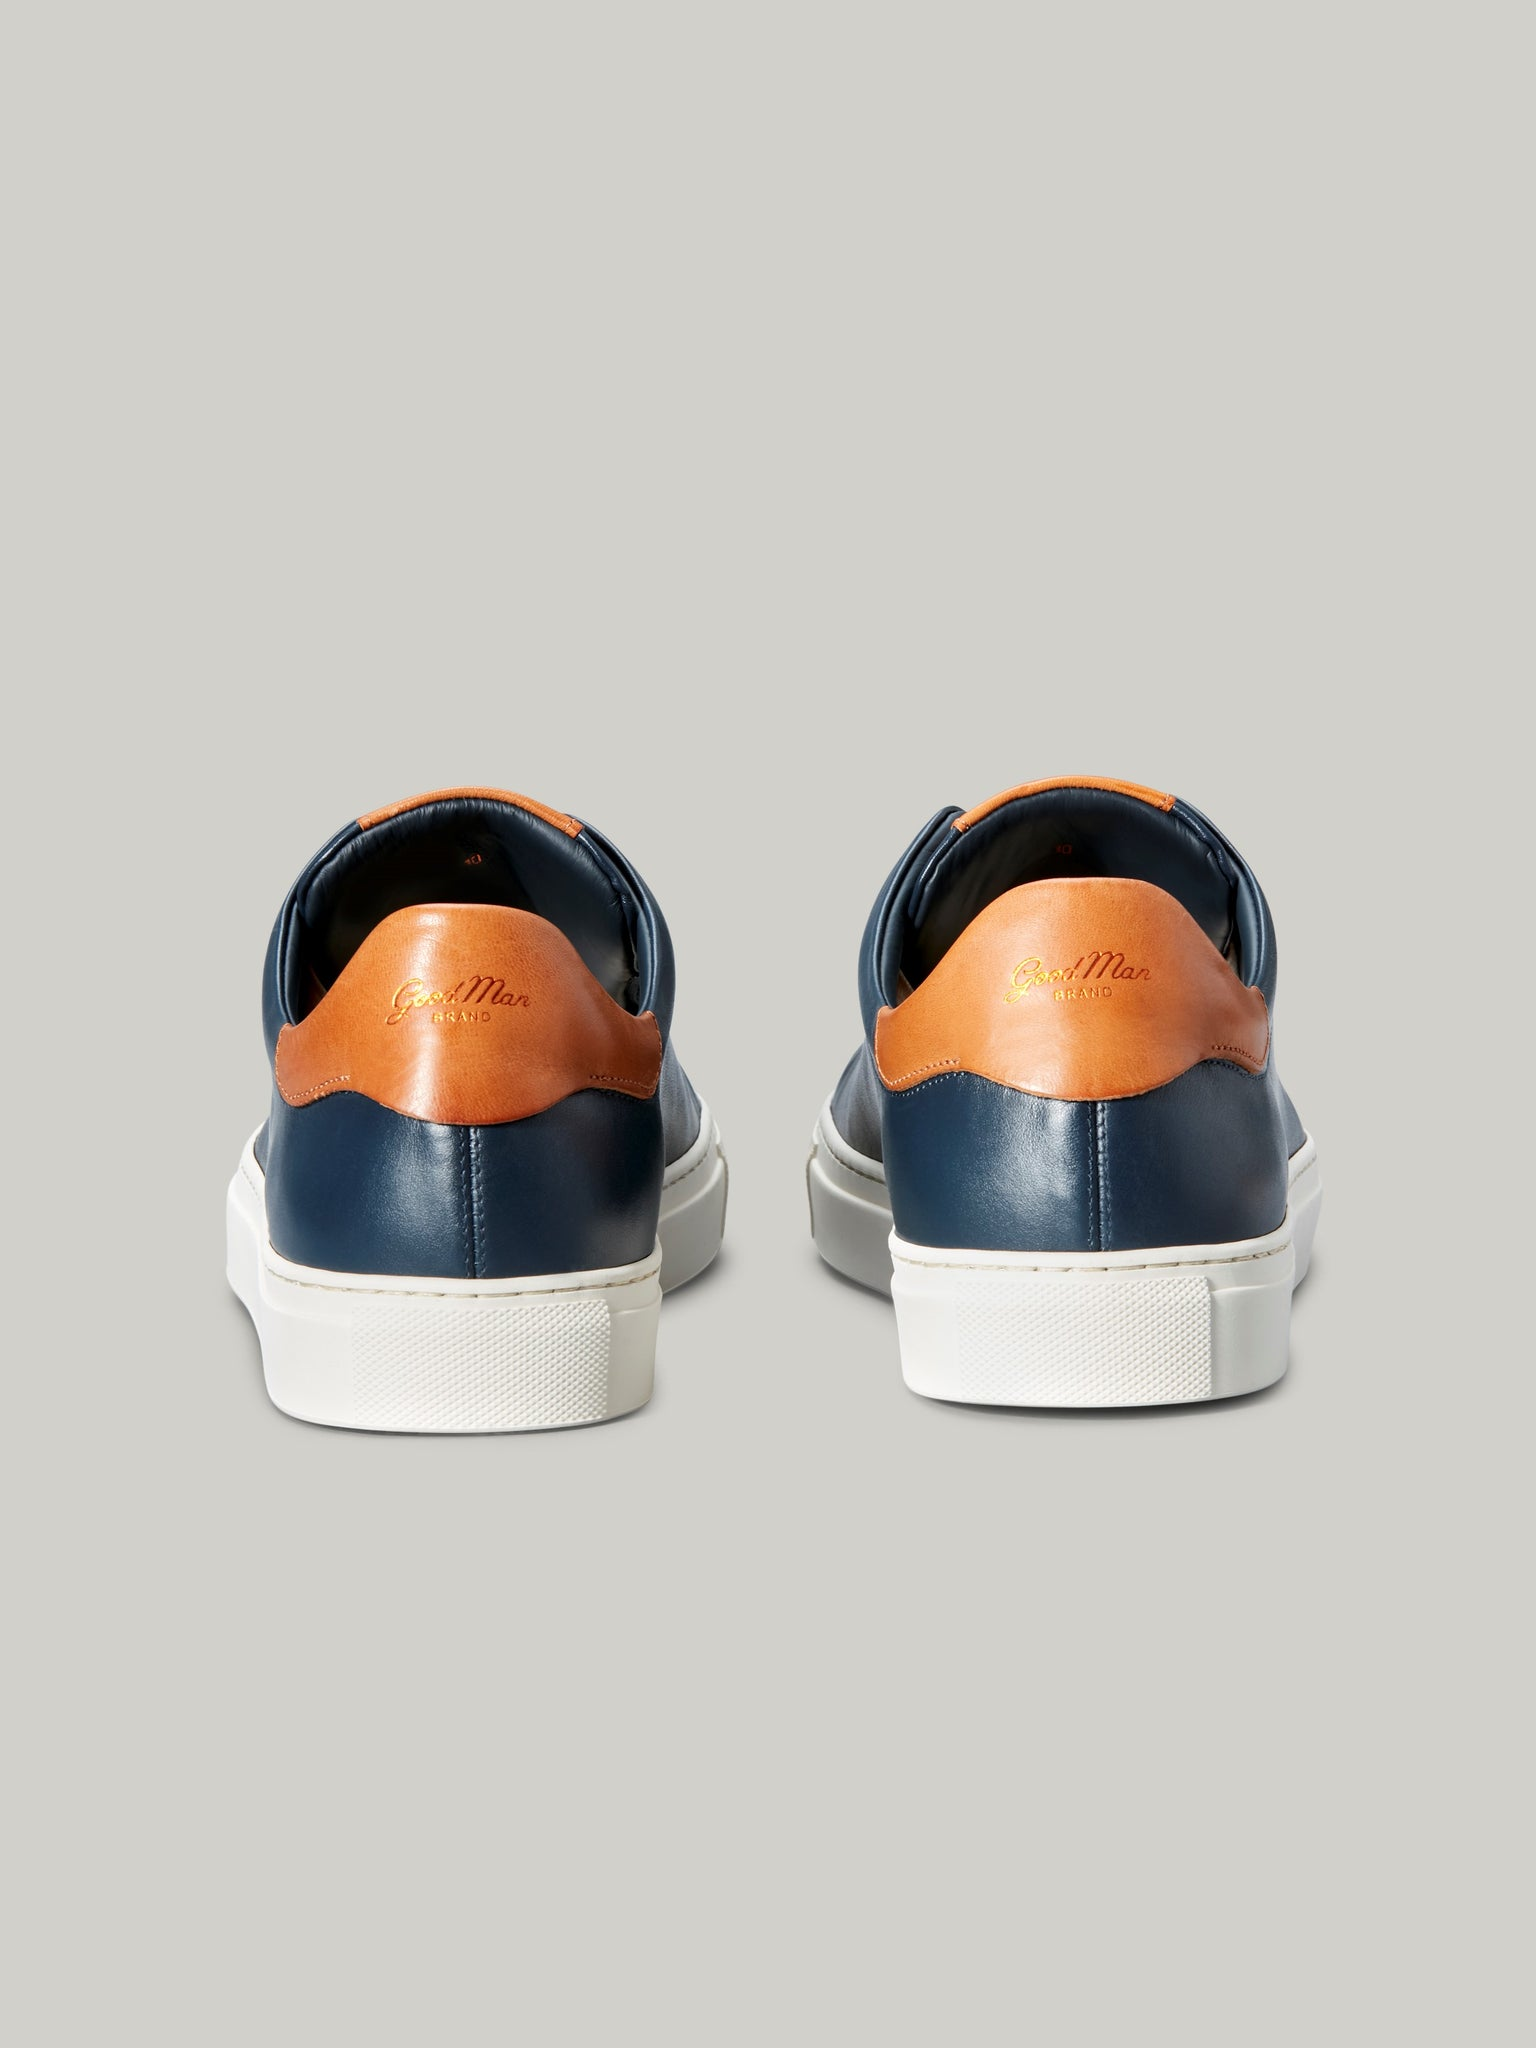 Legend Lo Top Sneaker - Navy / Vachetta